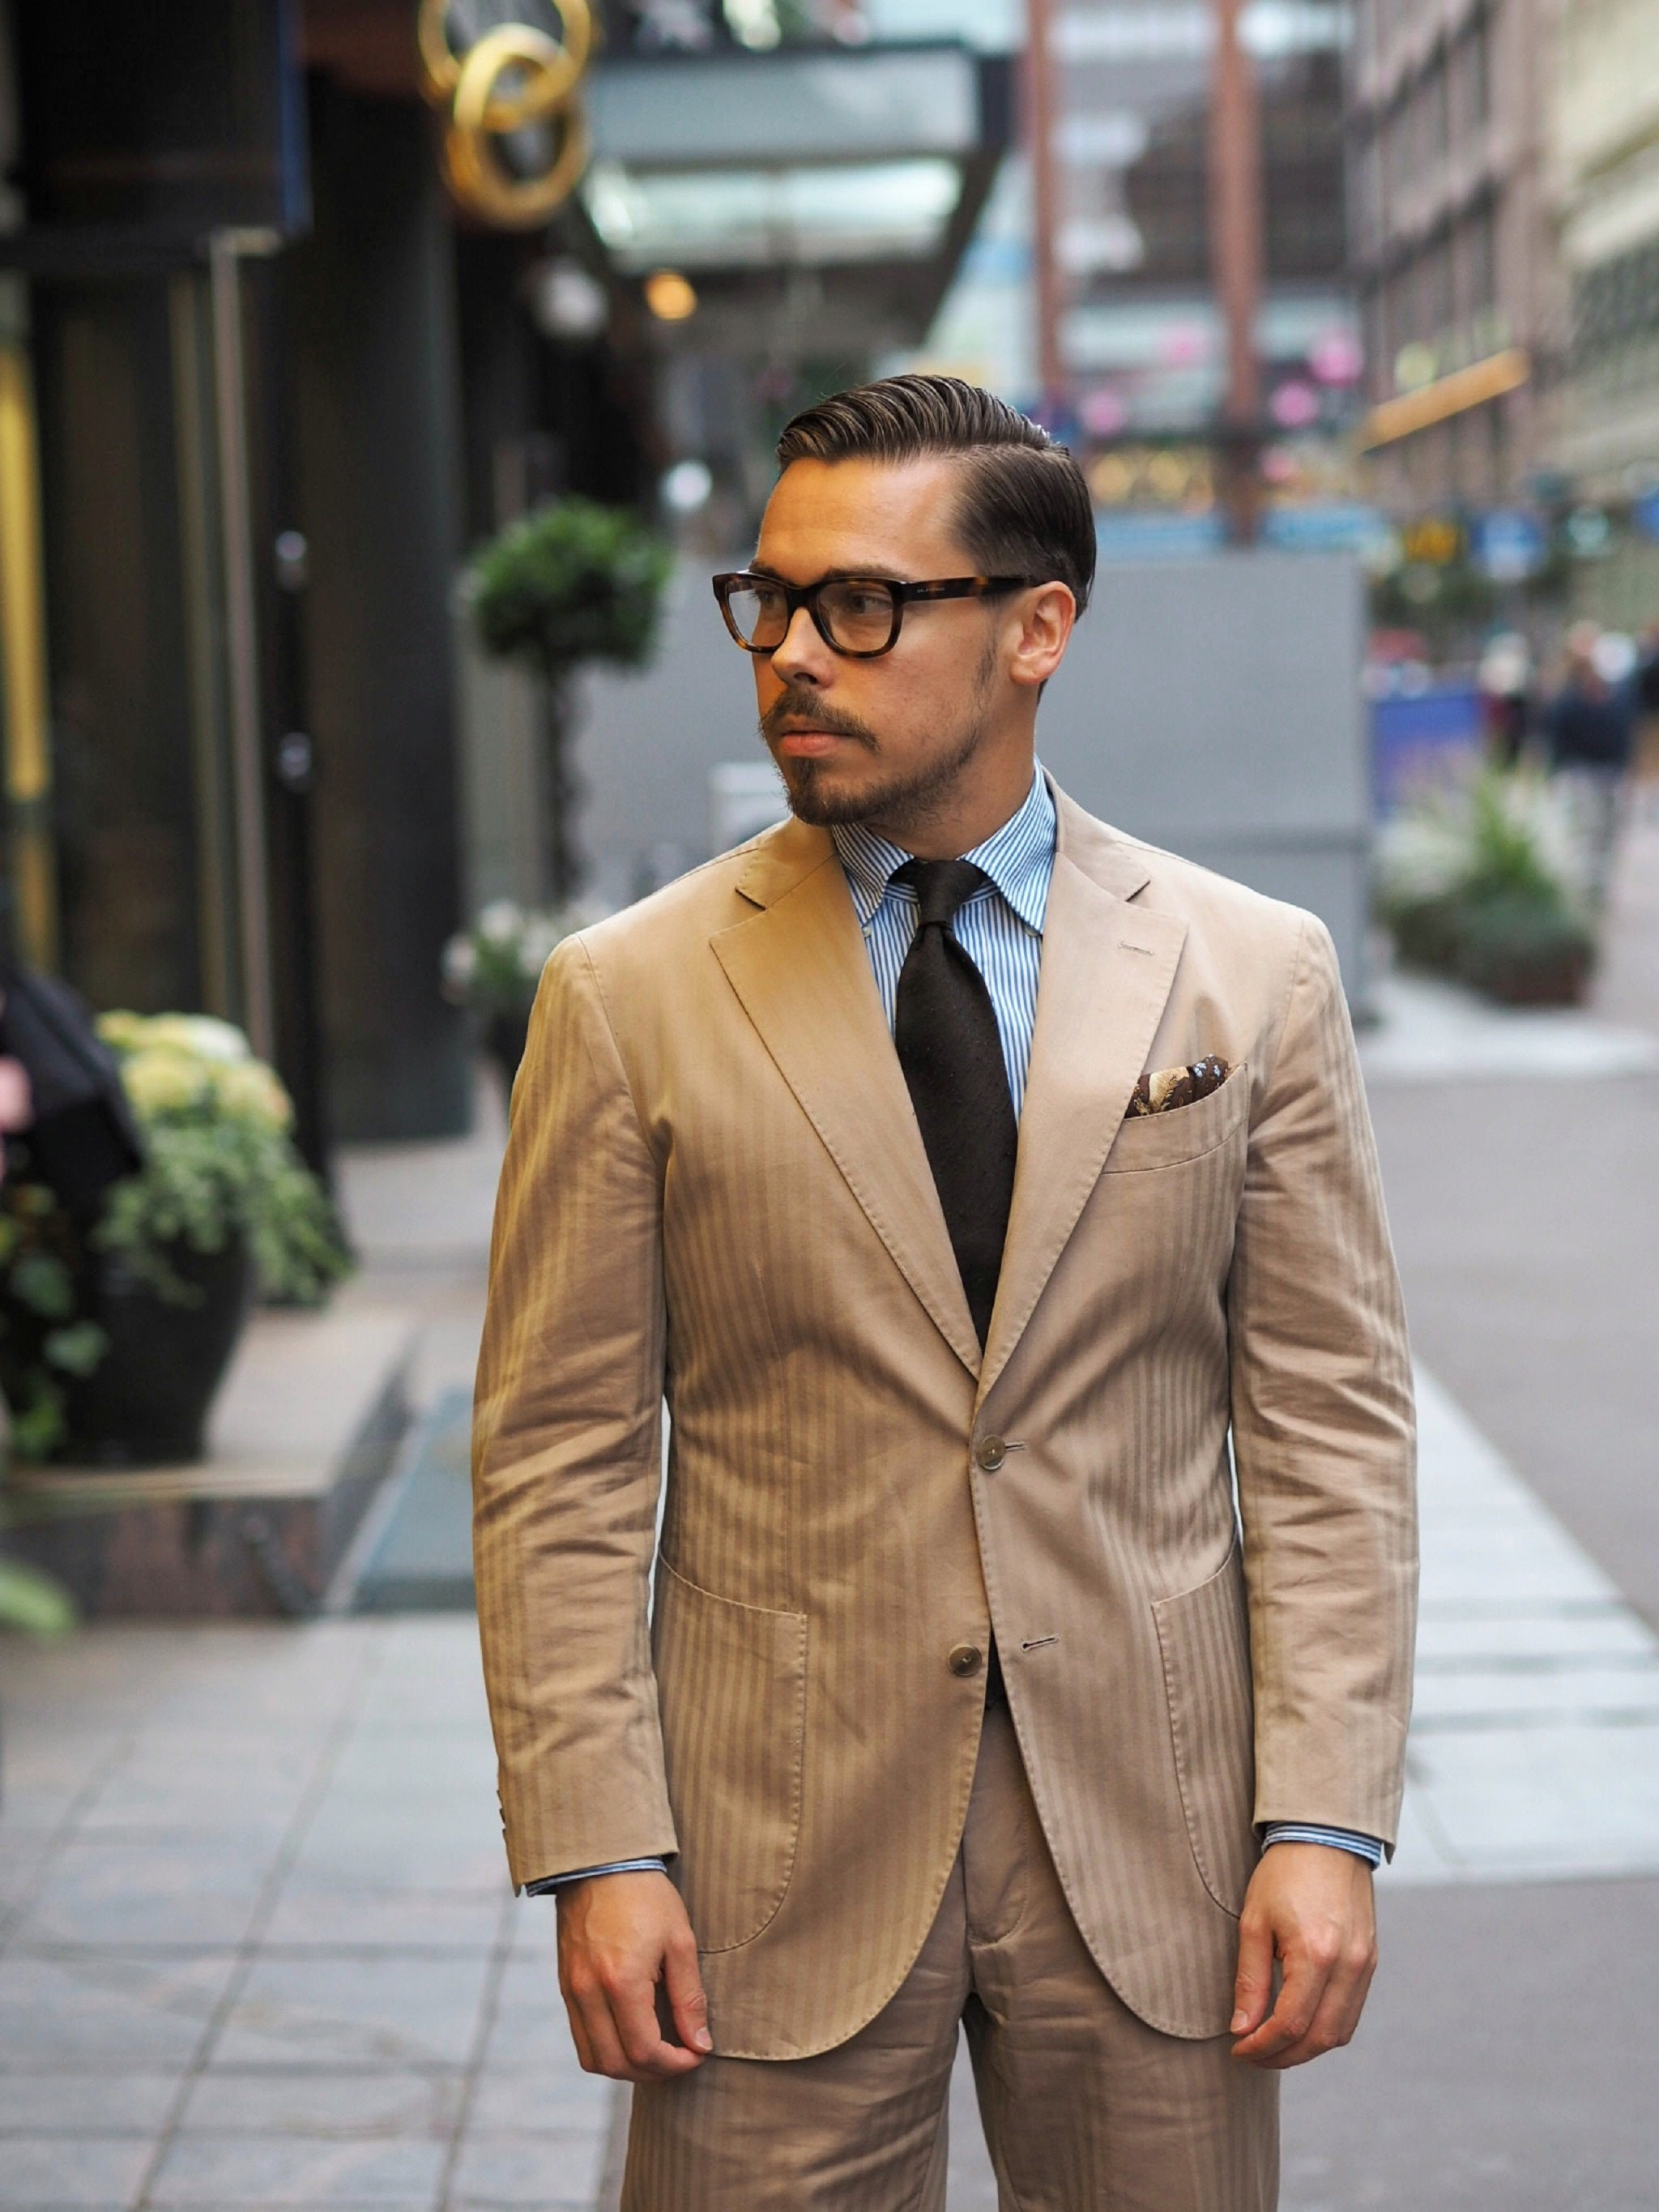 Solaro-suit-with-tie-for-business-wear